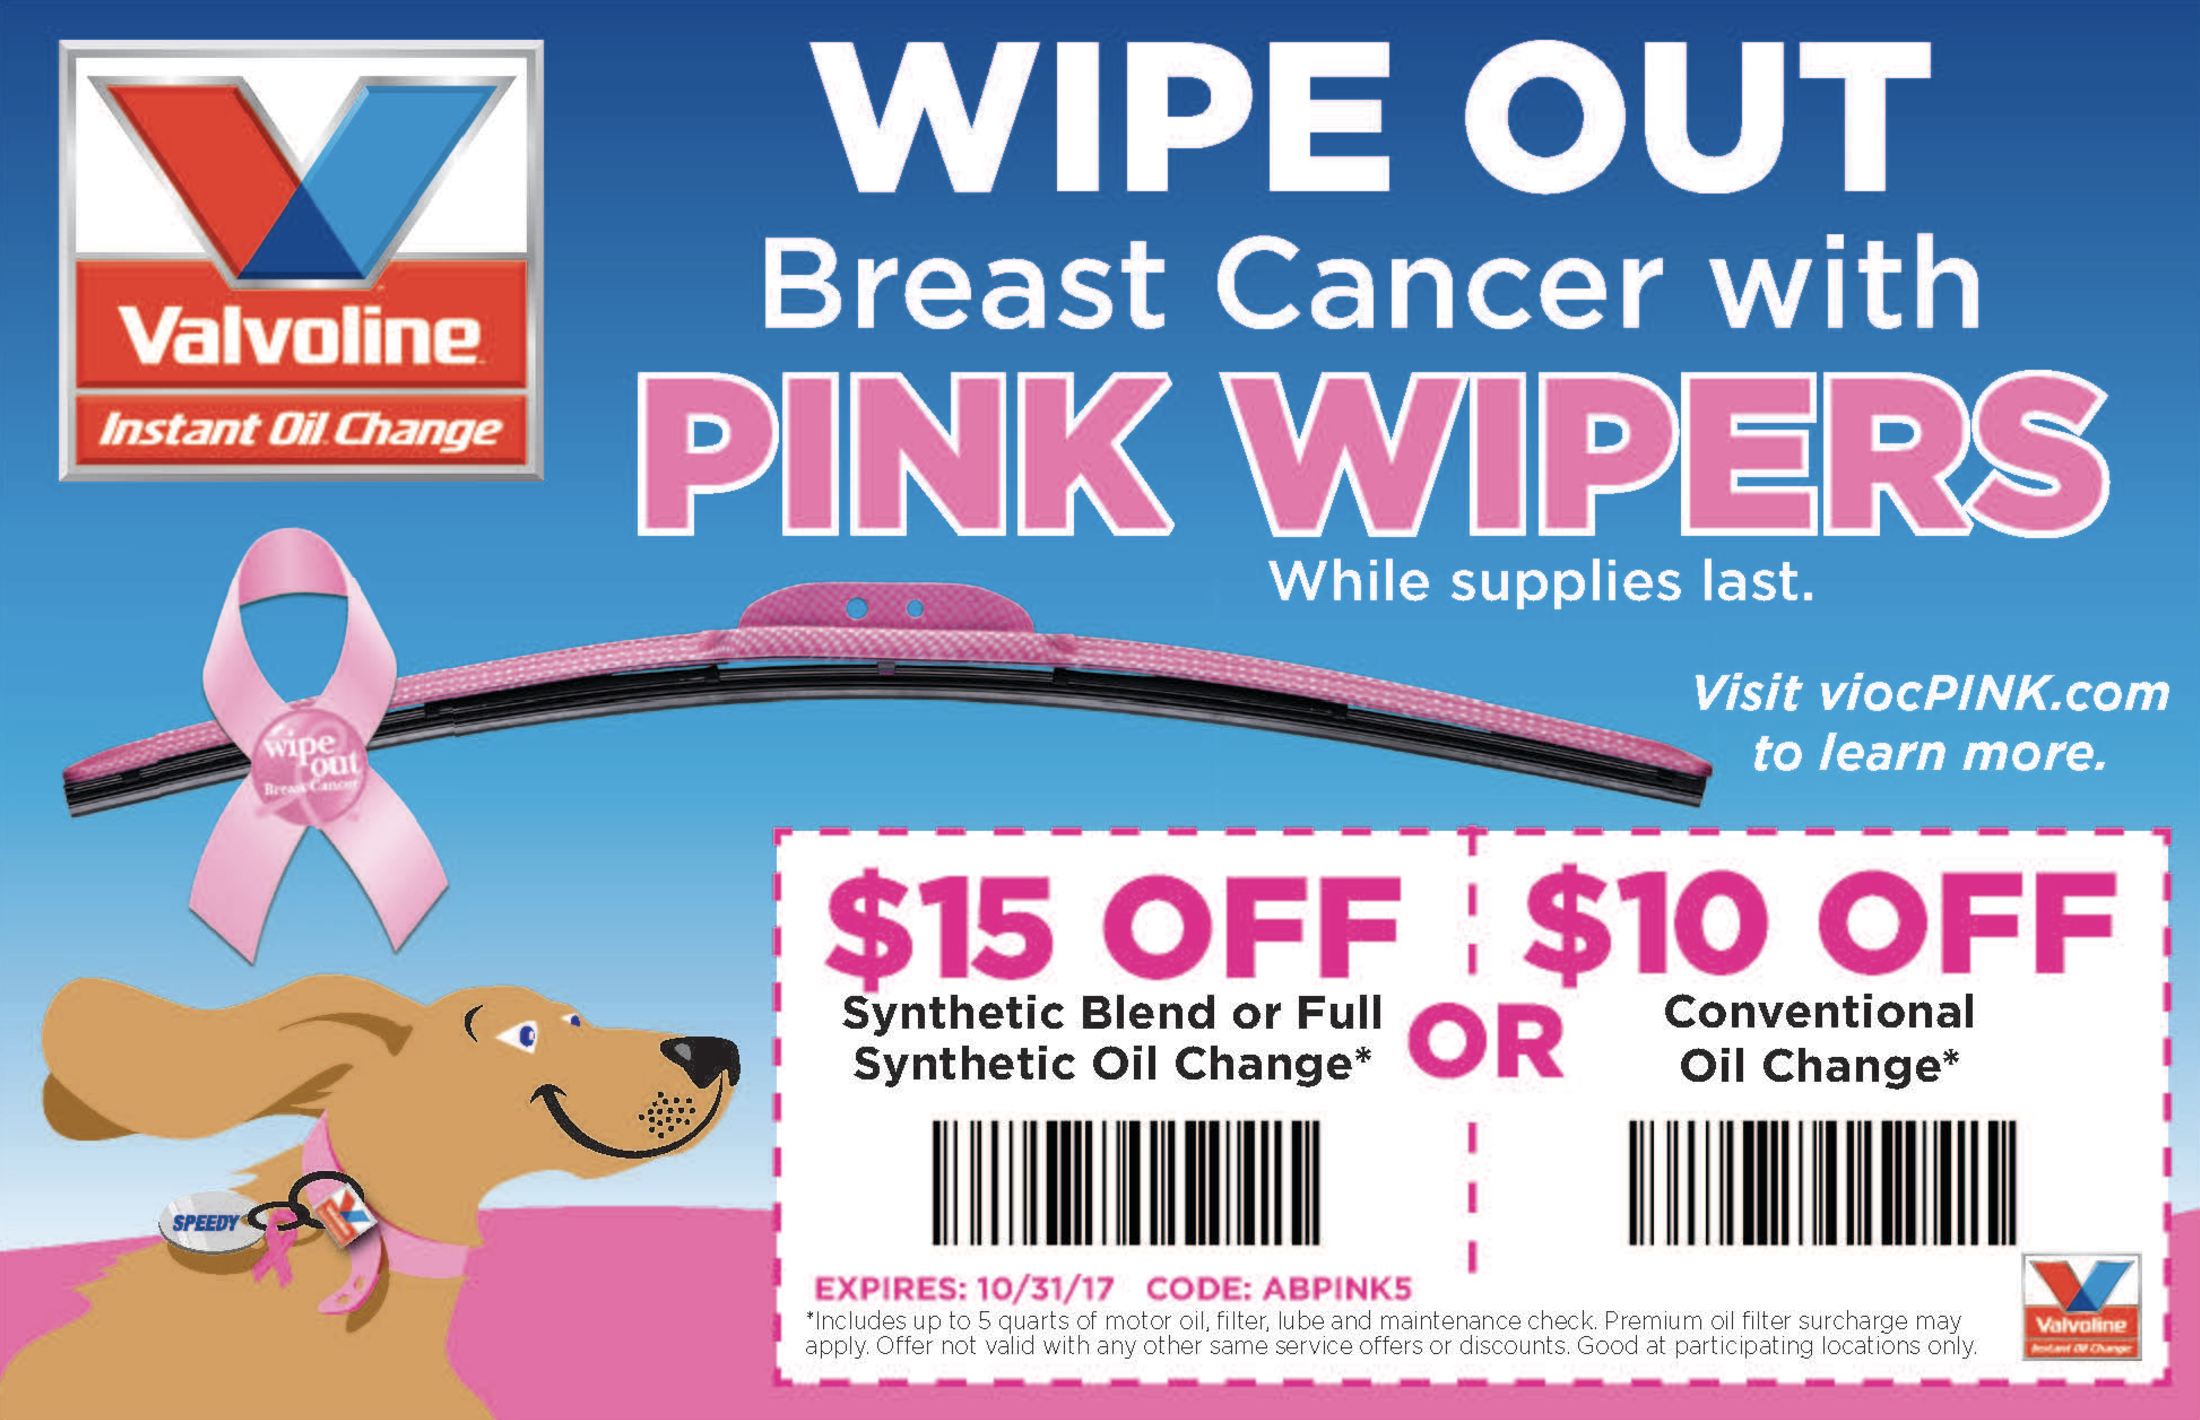 If you purchase the AutoTex PINK wipers onSaturday, September 30th, VIOC willdoubletheir donation to the National Breast Cancer Foundation!